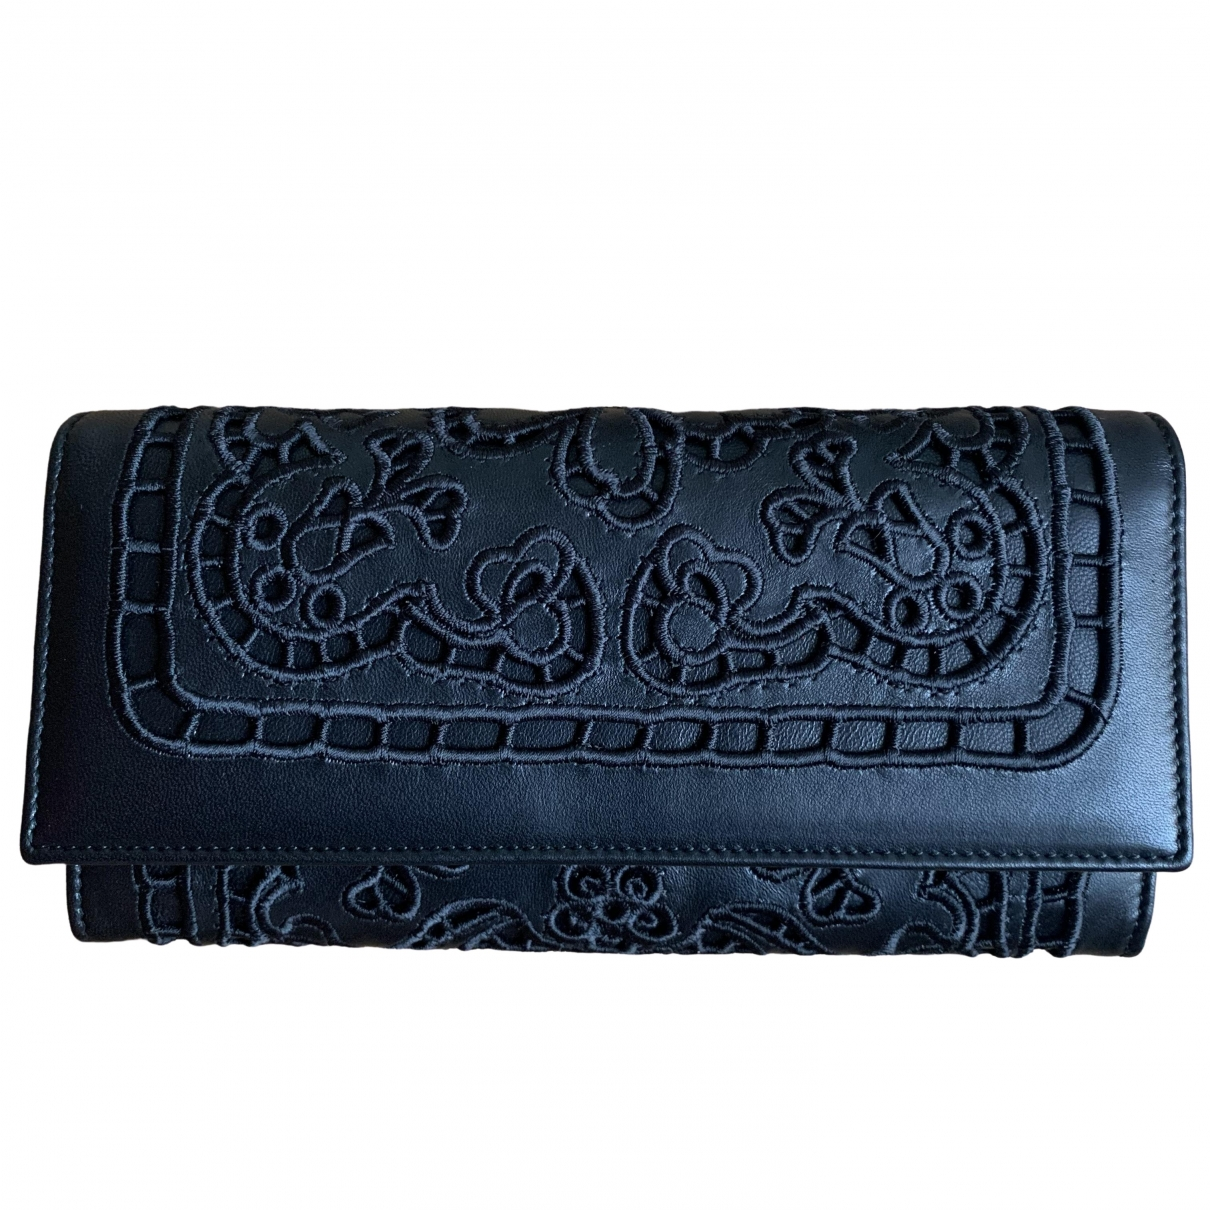 Dolce & Gabbana \N Black Leather wallet for Women \N